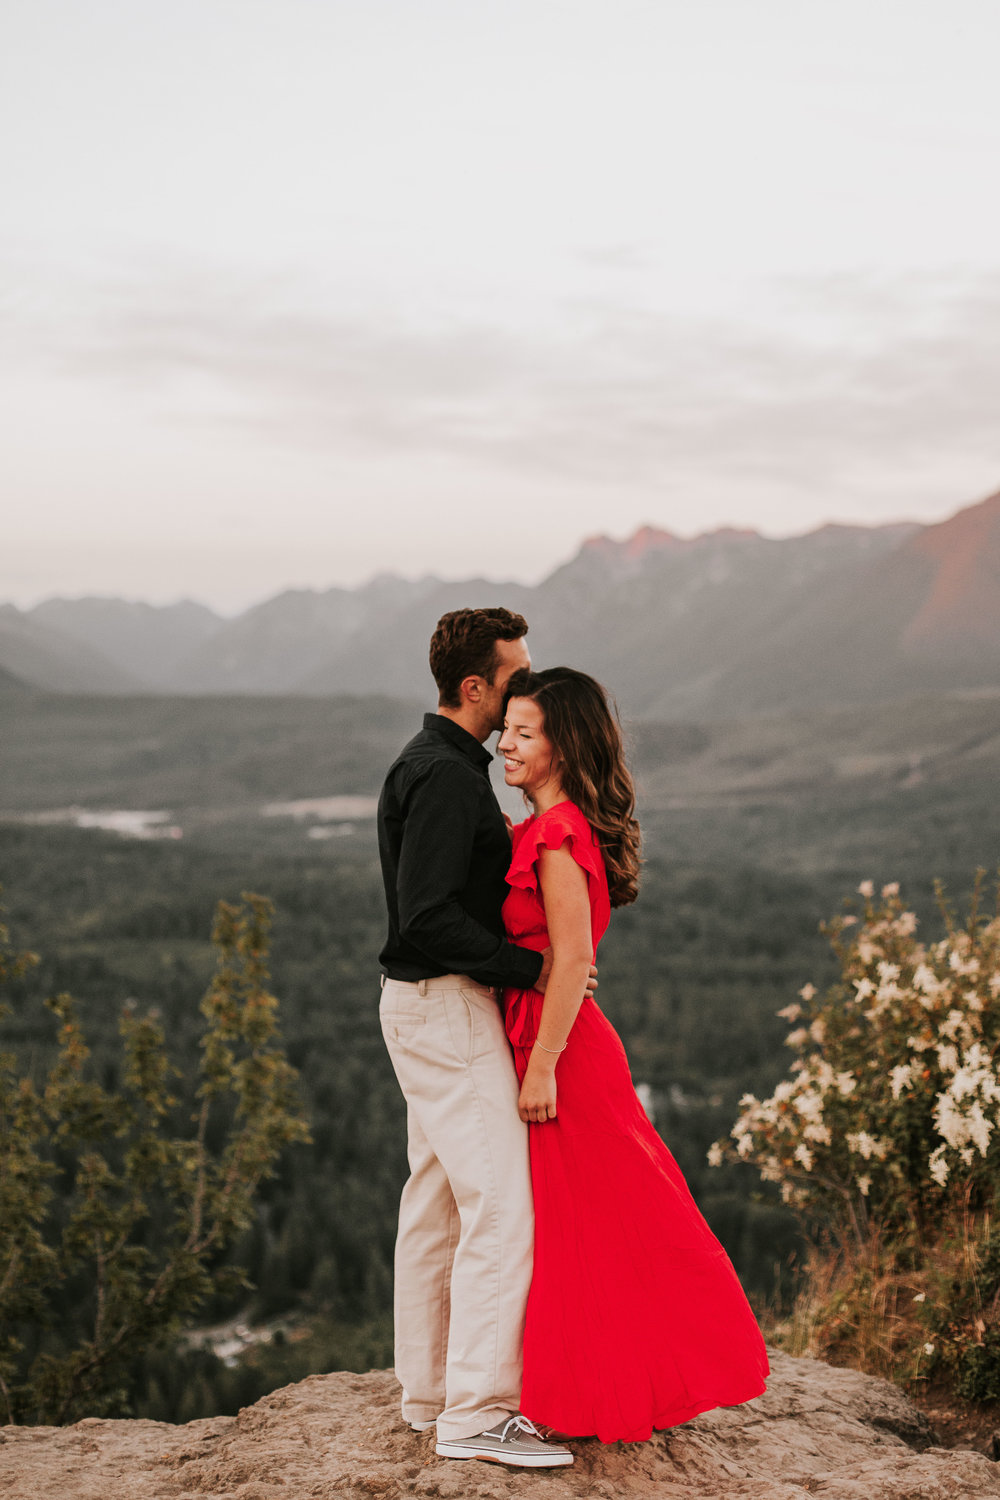 nicole-daacke-photography-rattlesnake-ridge-adventurous-engagement-session-hiking-seattle-washington-destinatino-elopement-intimate-wedding-photographer-26.jpg